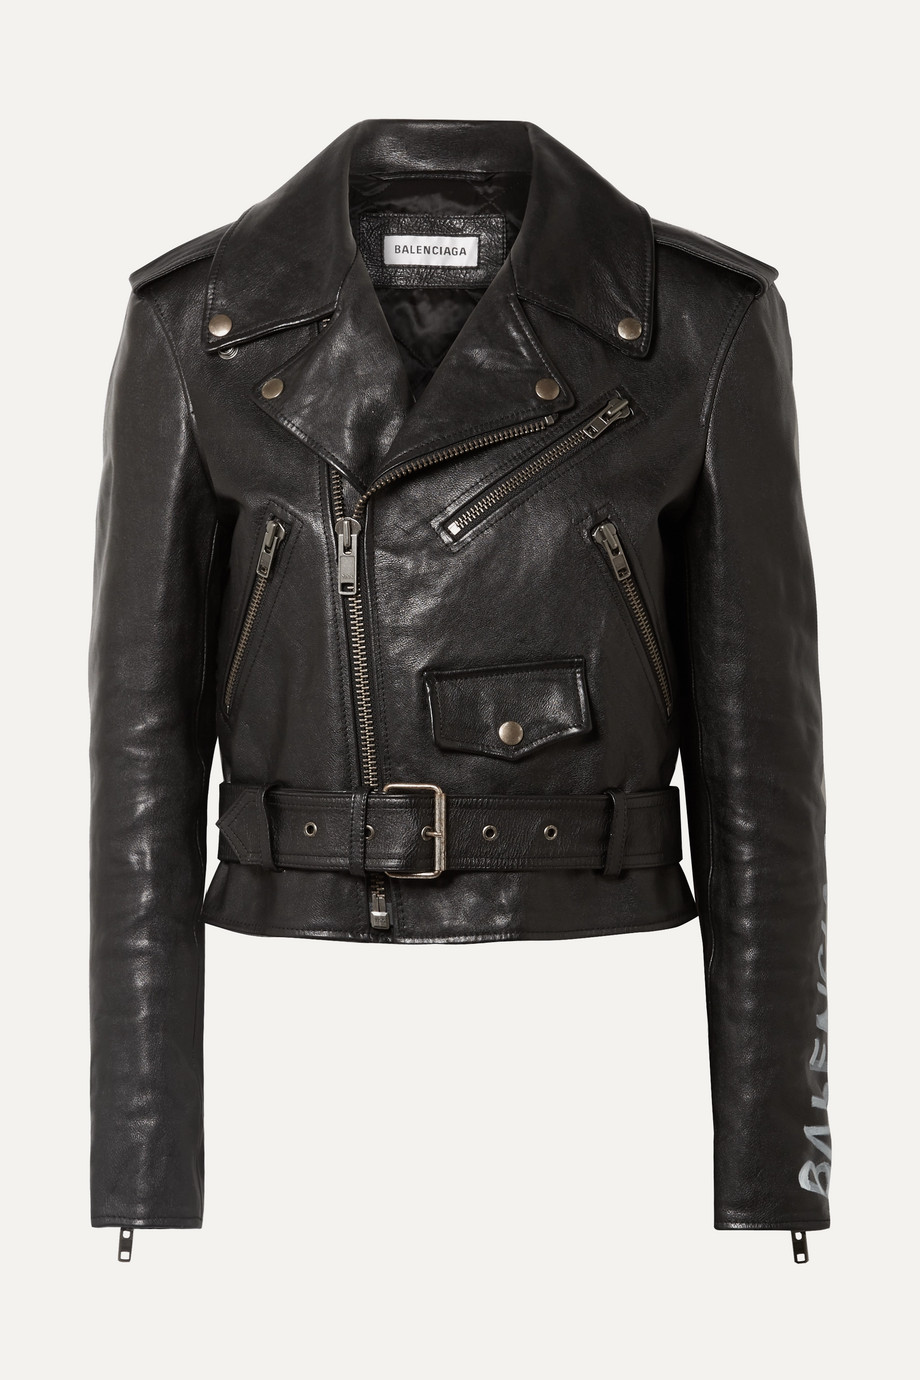 Exact Product: Printed Textured-leather Biker Jacket, Brand: Balenciaga, Available on: net-a-porter.com, Price: $3900